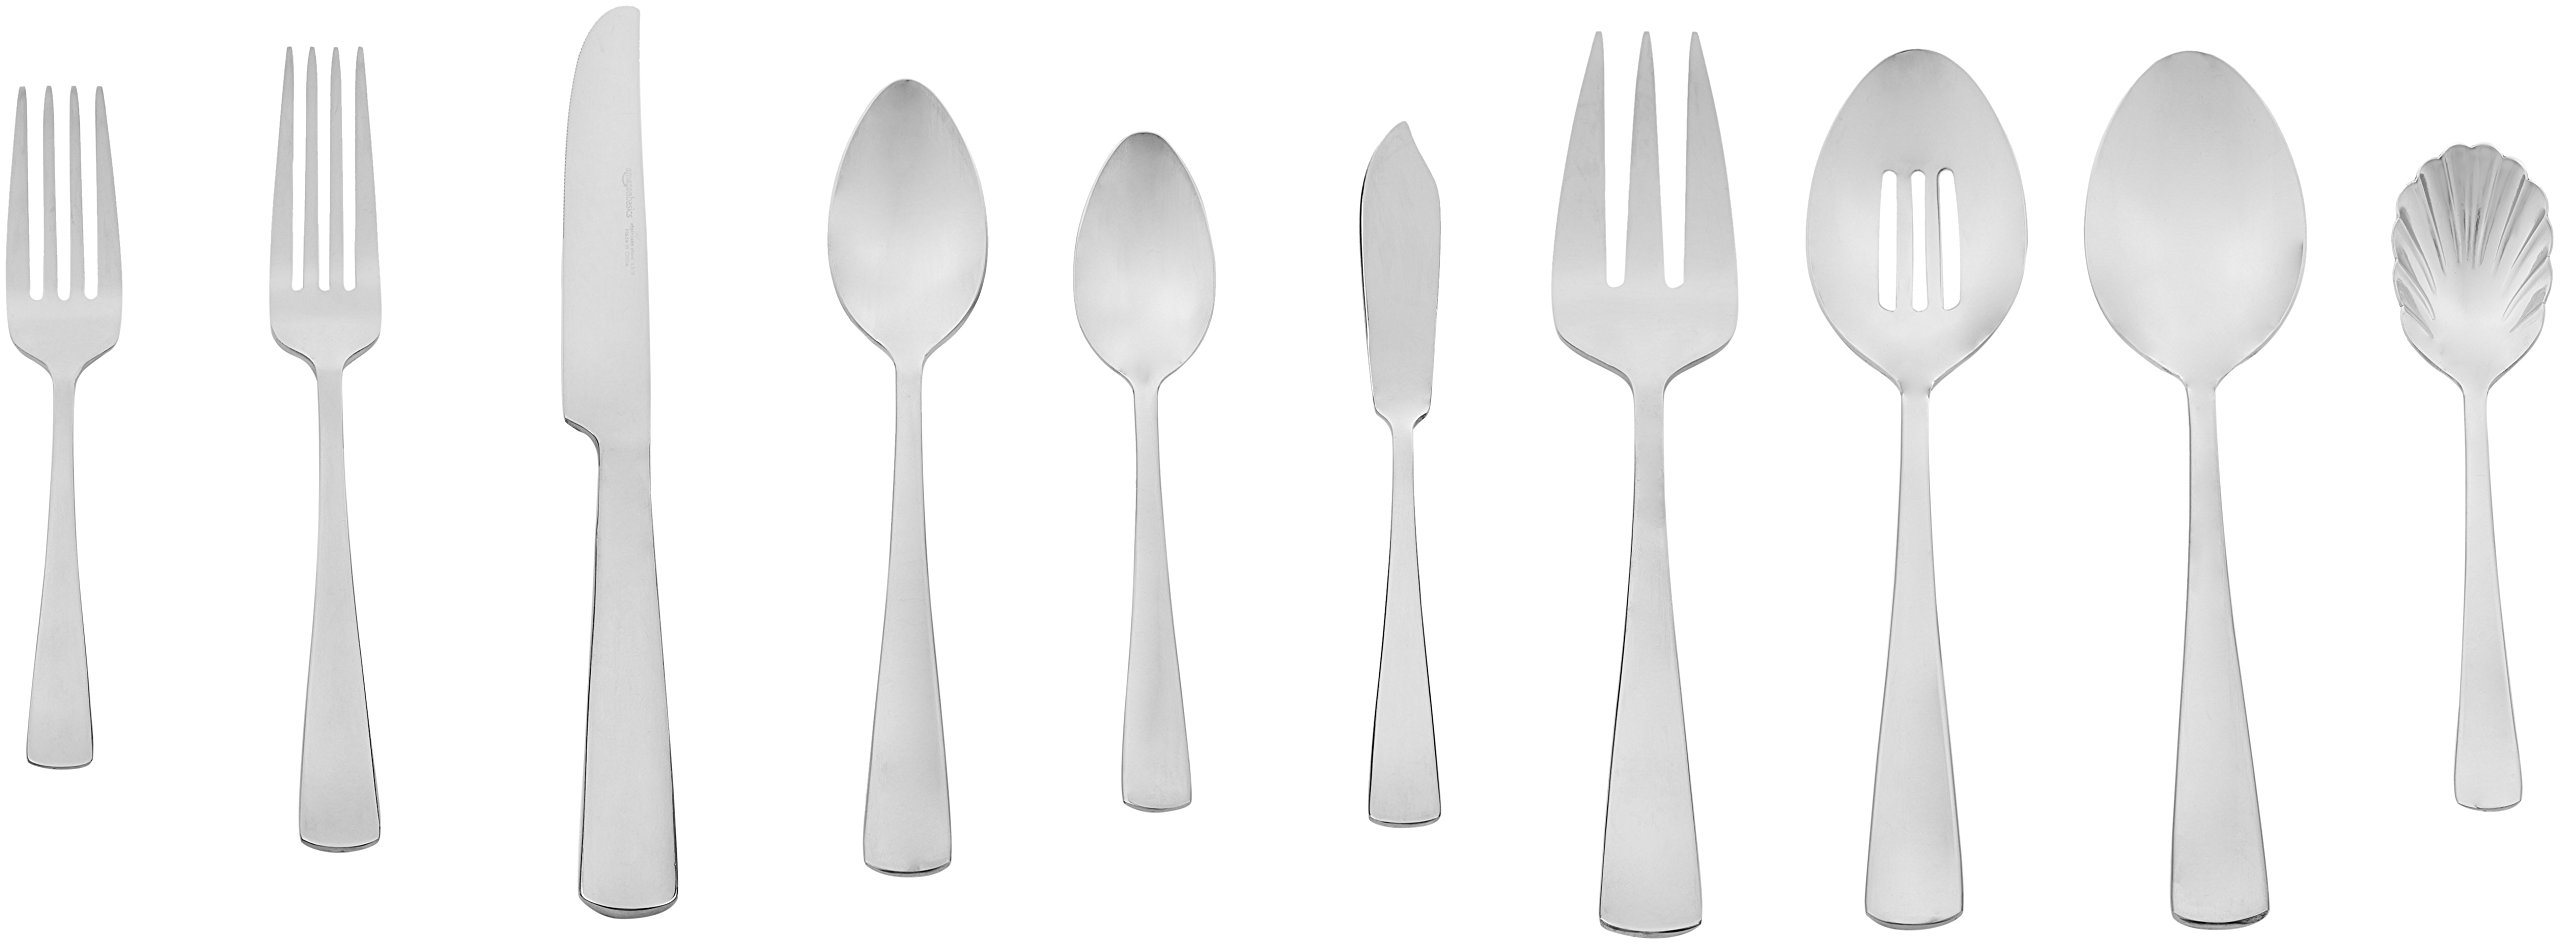 AmazonBasics 65-Piece Stainless Steel Flatware Set with Square Edge, Service for 12 by AmazonBasics